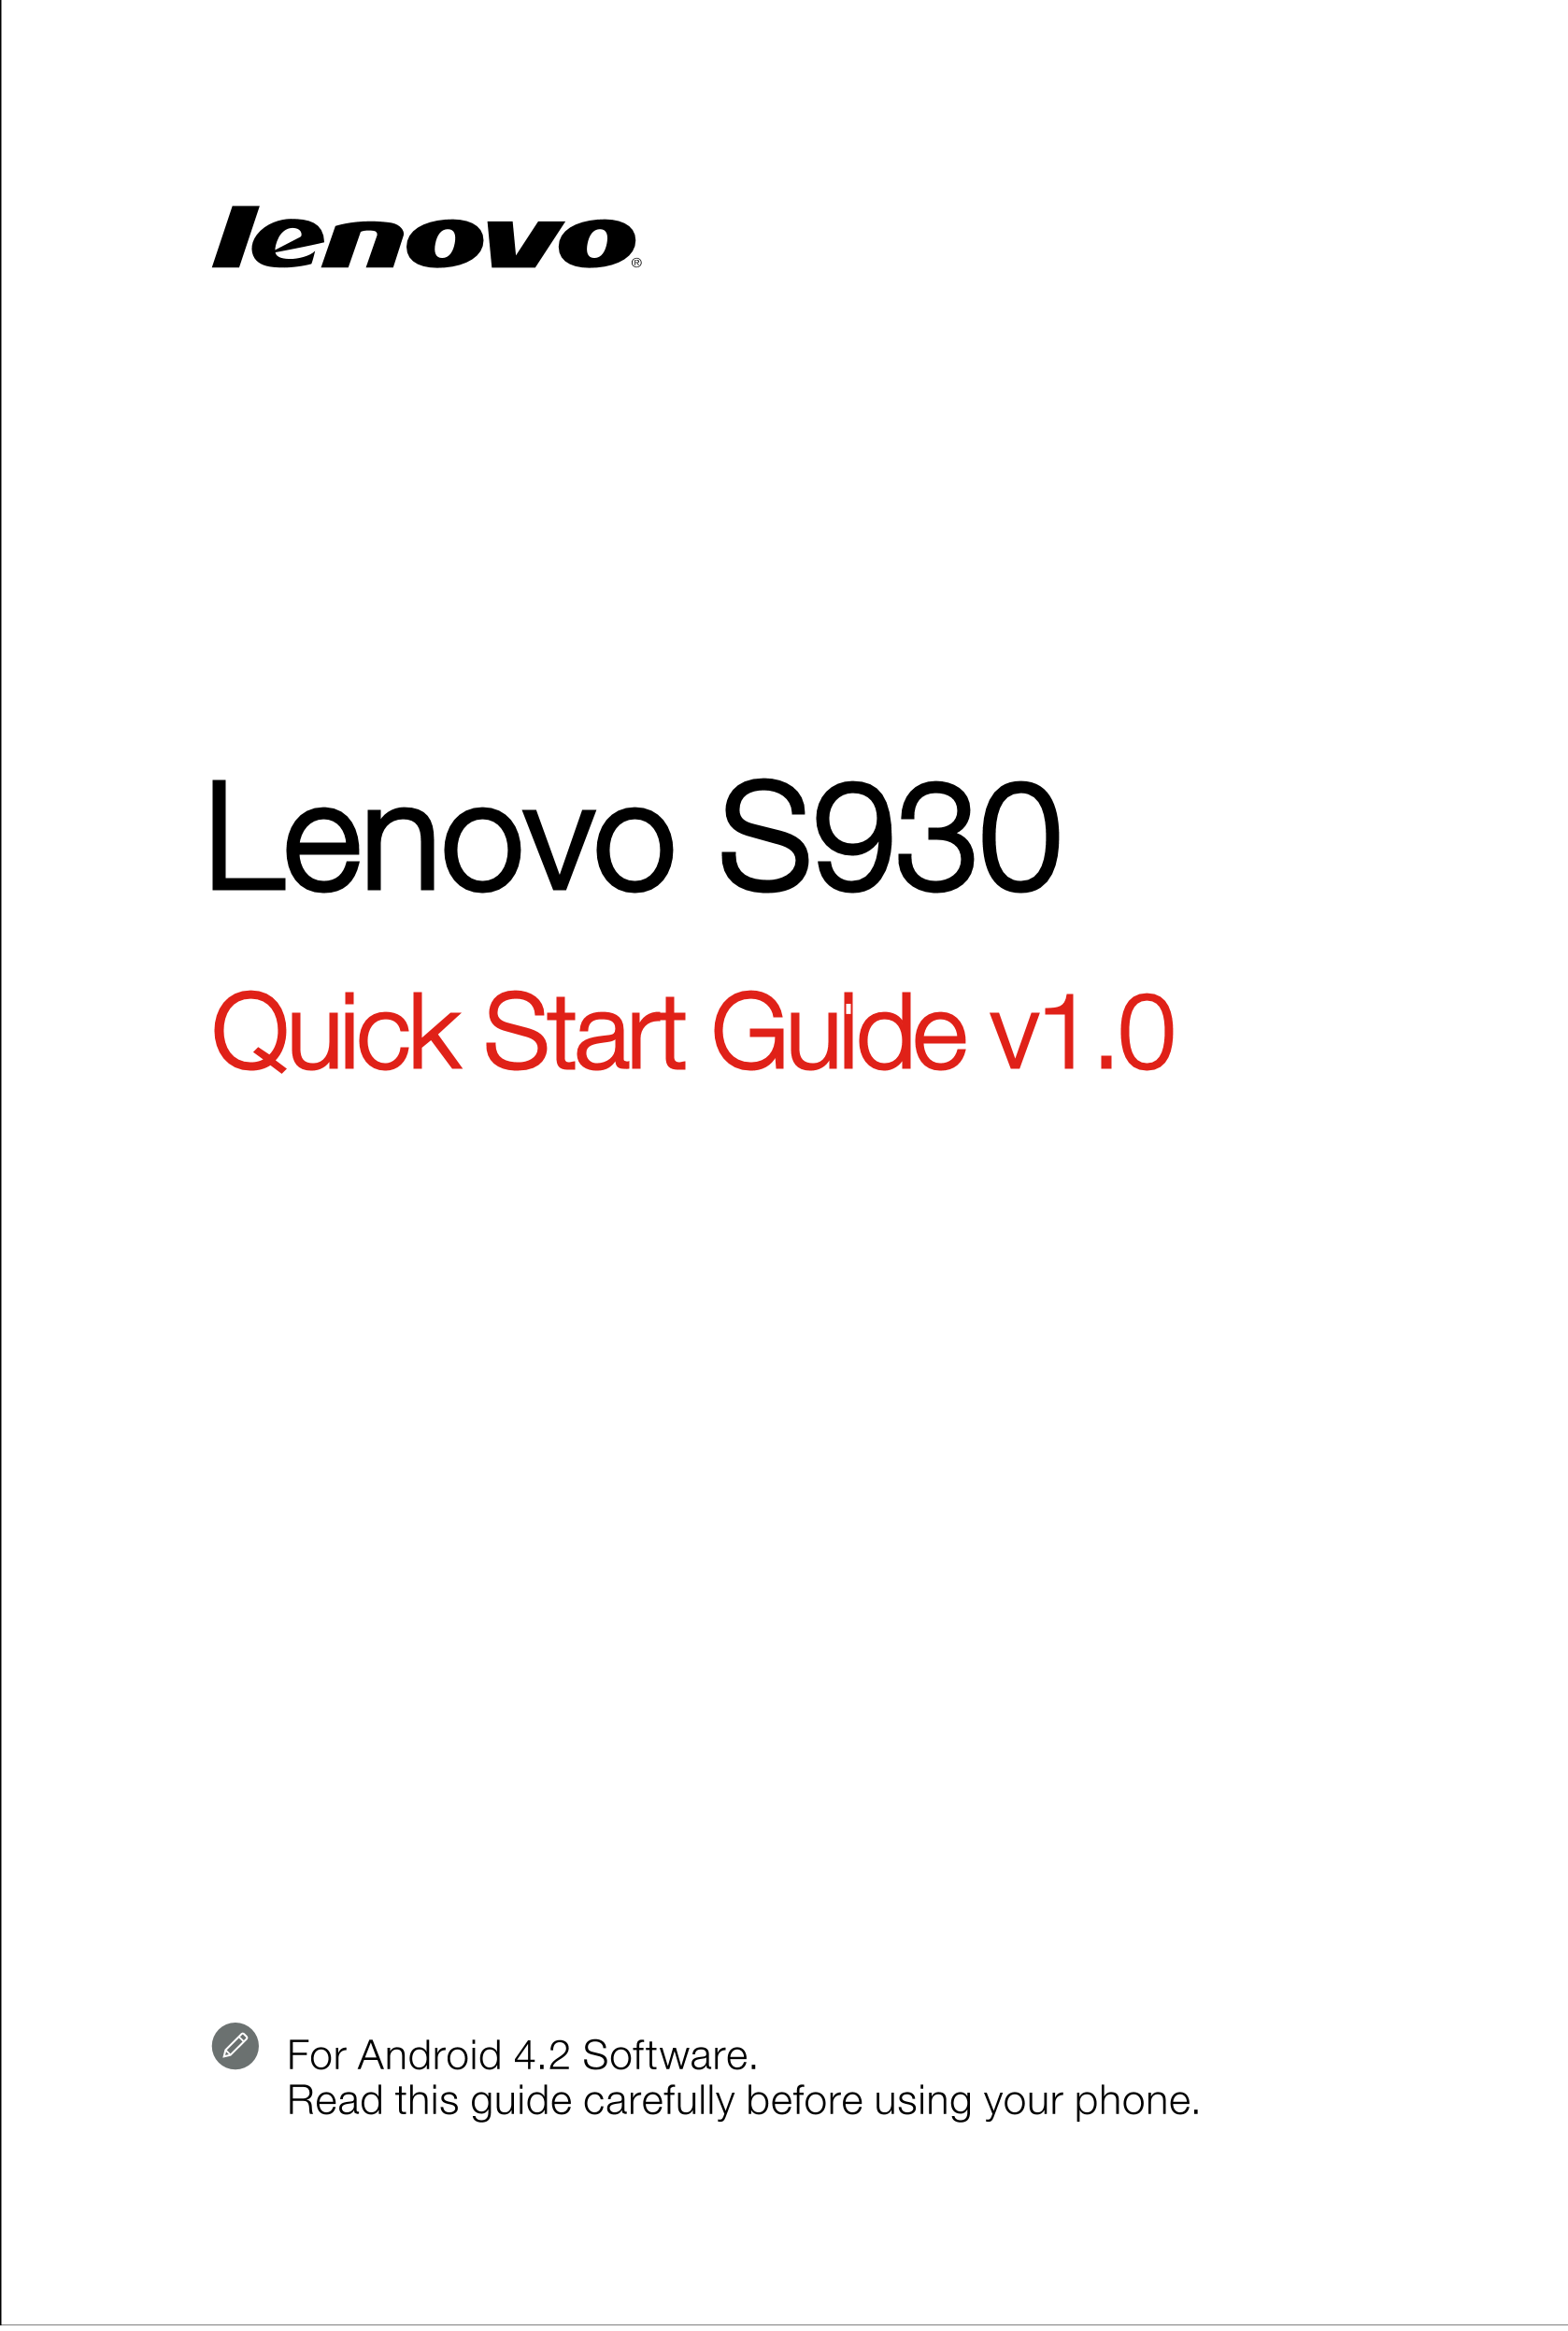 manual lenovo s930 android 4 2 device guides rh helpforsmartphone com 4.4 Android Games Android 4.3 Nexus